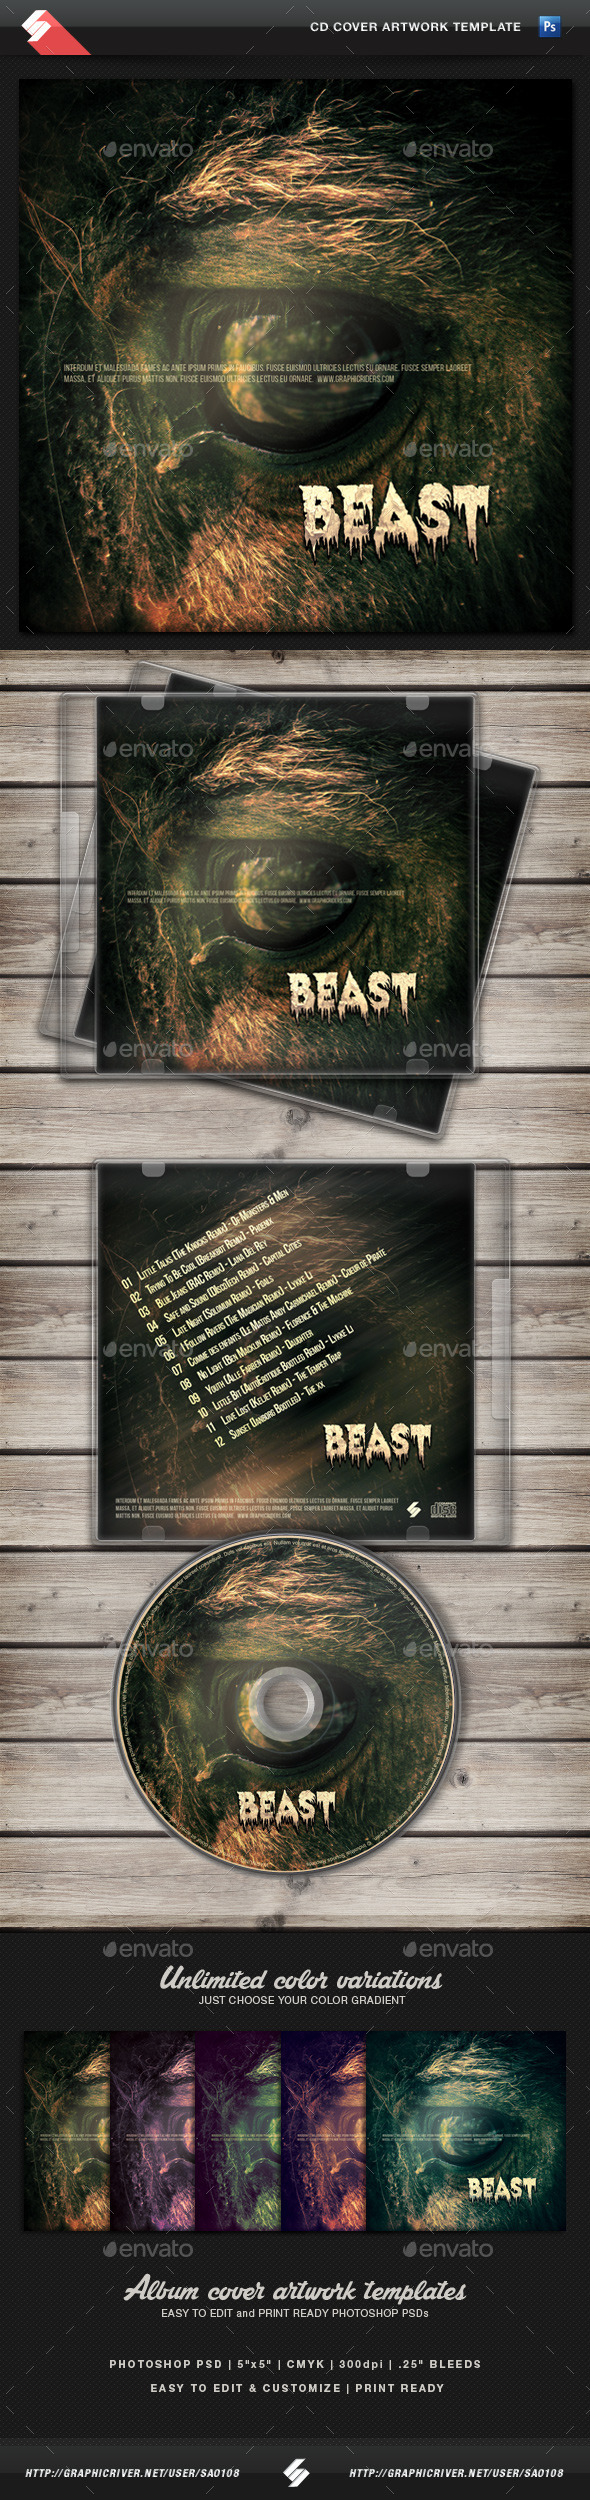 The Beast CD Cover Artwork Template